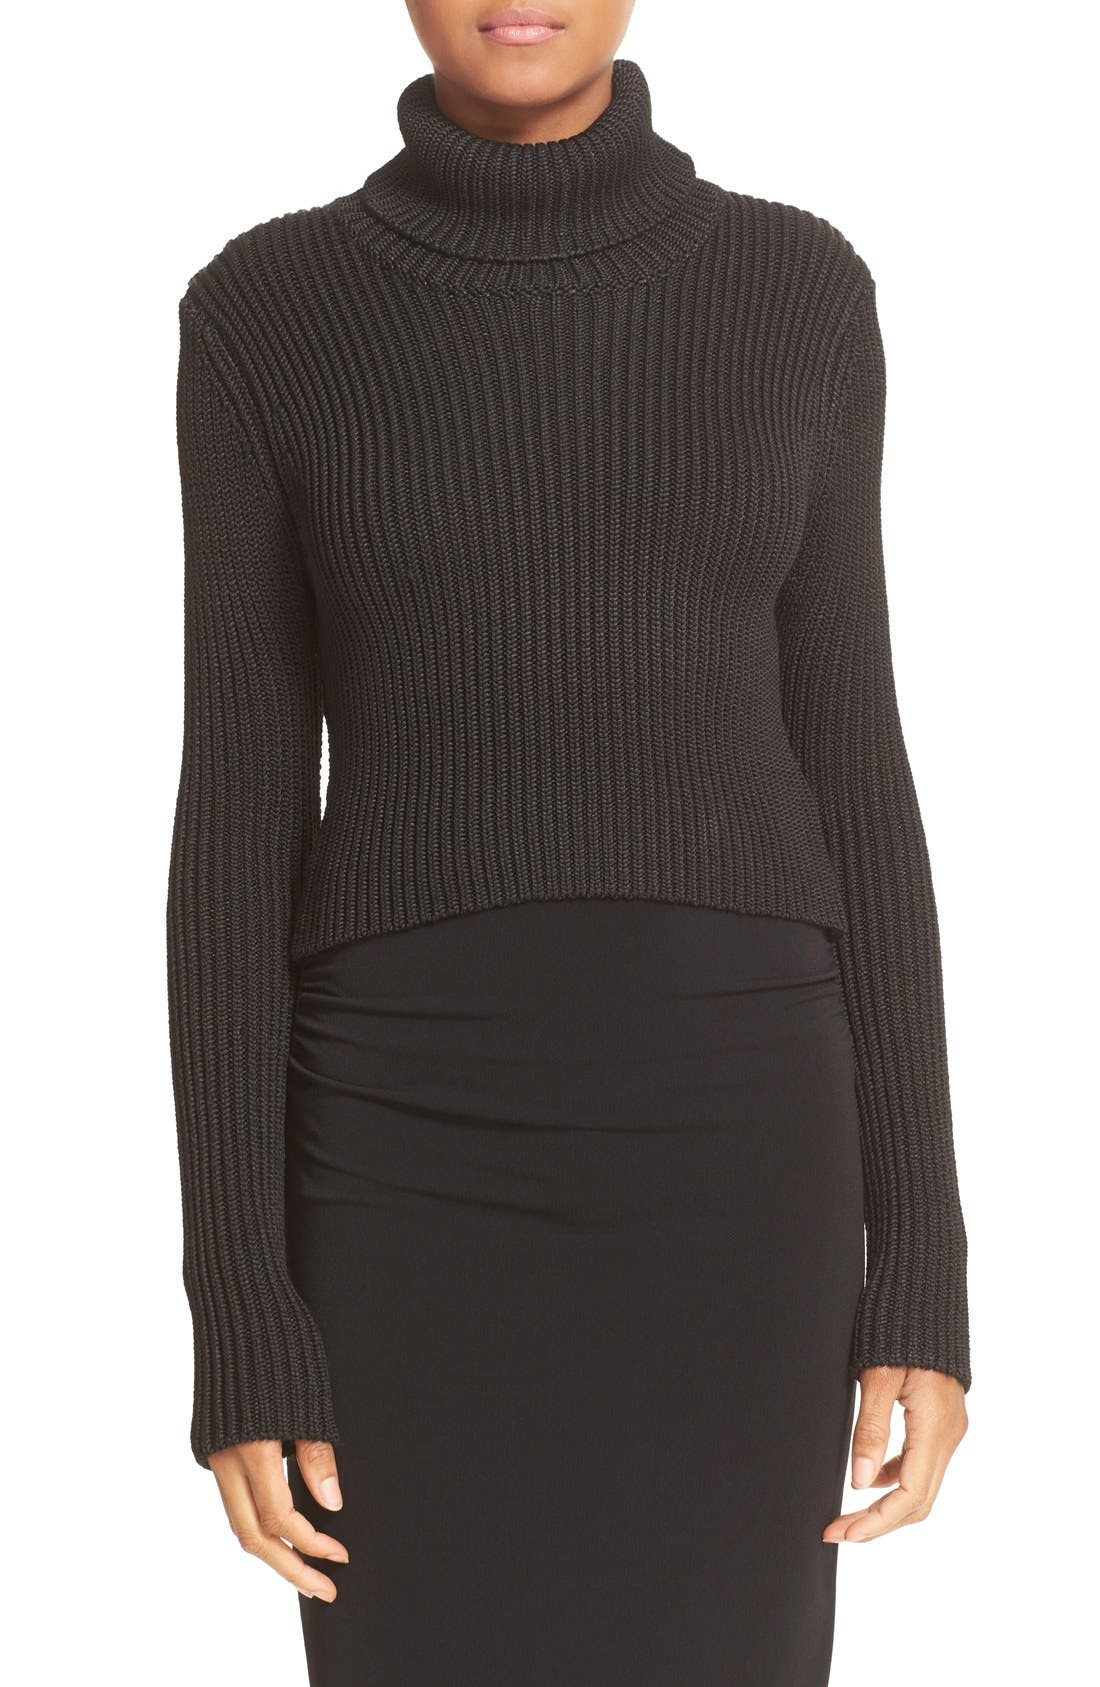 Main Image - Alice + Olivia Sierra Crop Rib Knit Turtleneck